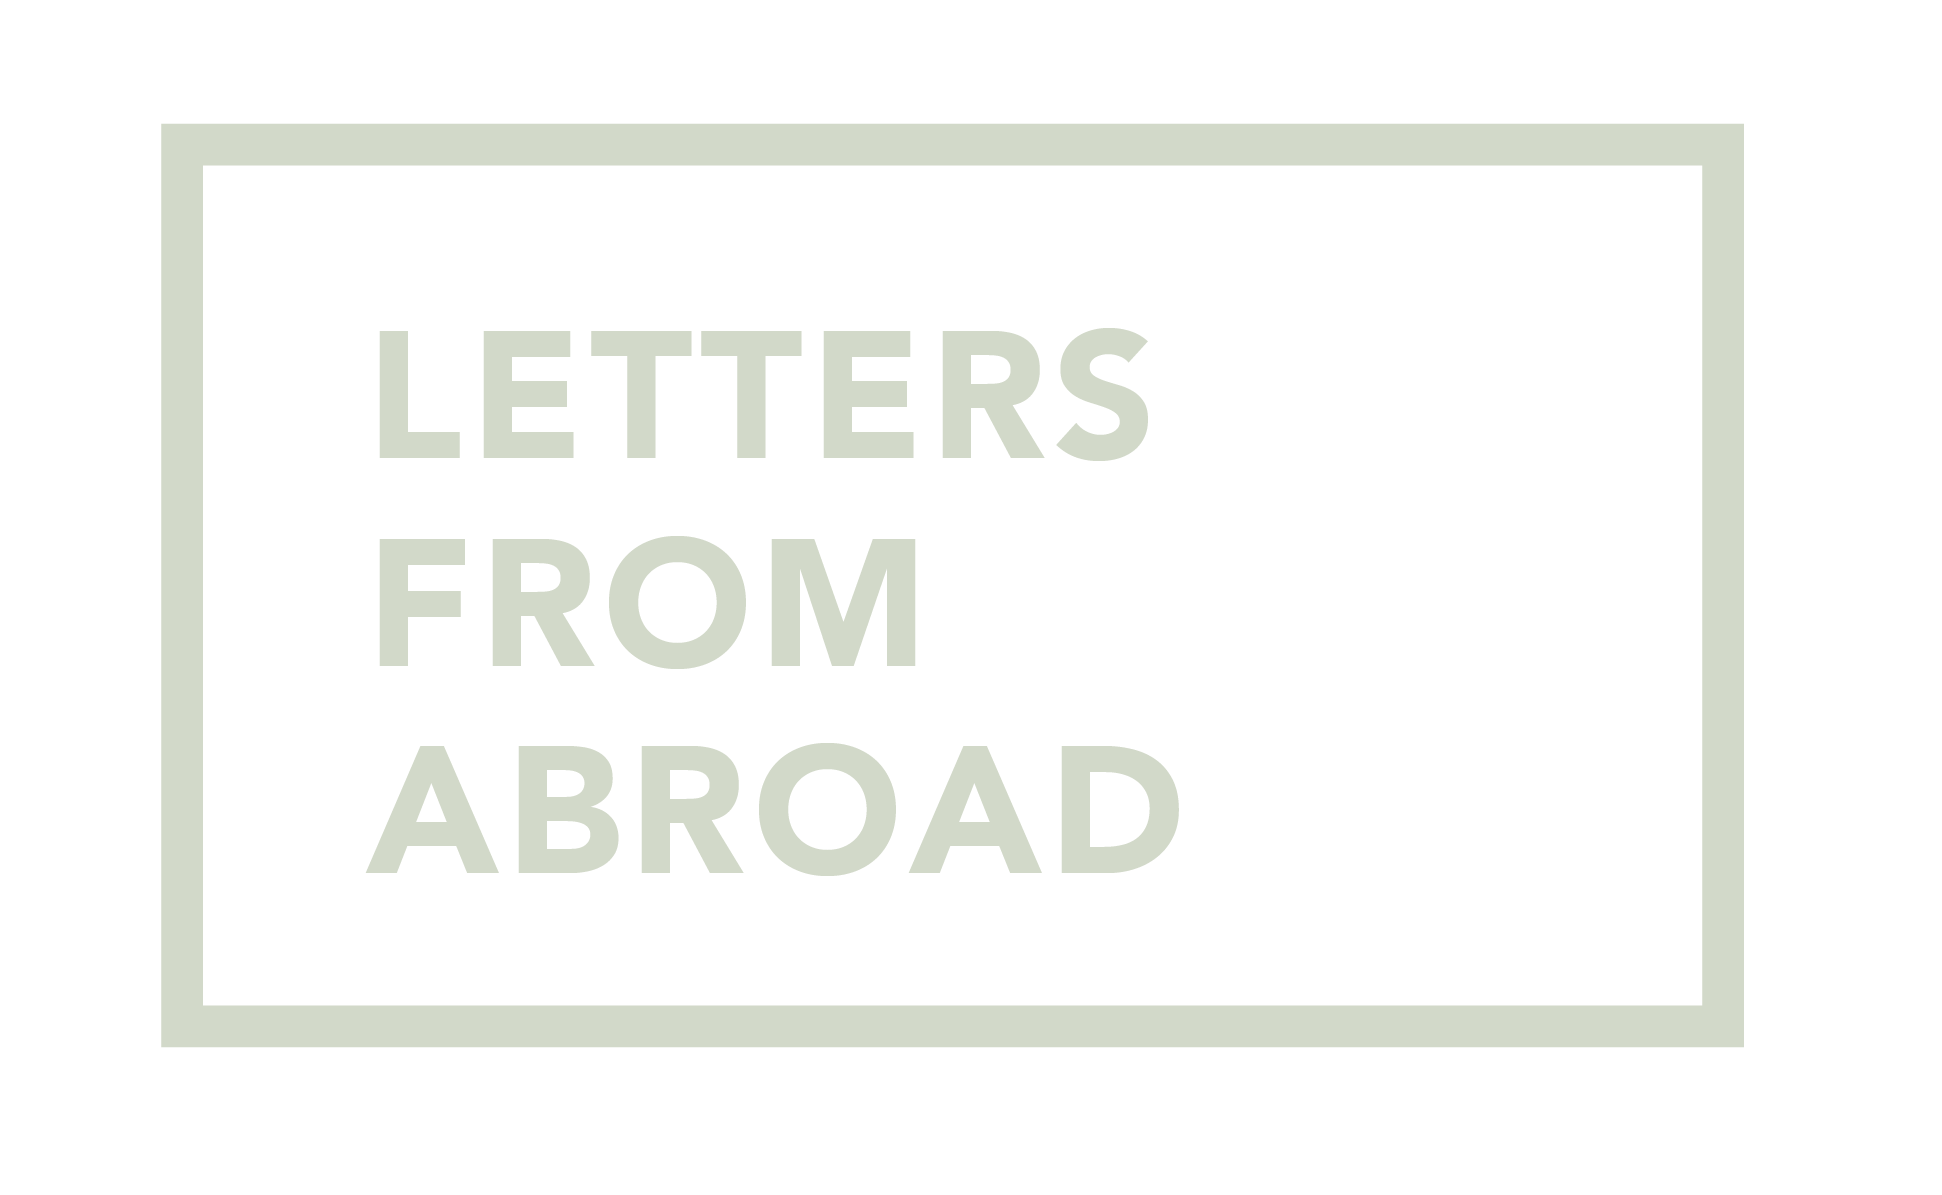 Letters from Abroad.png